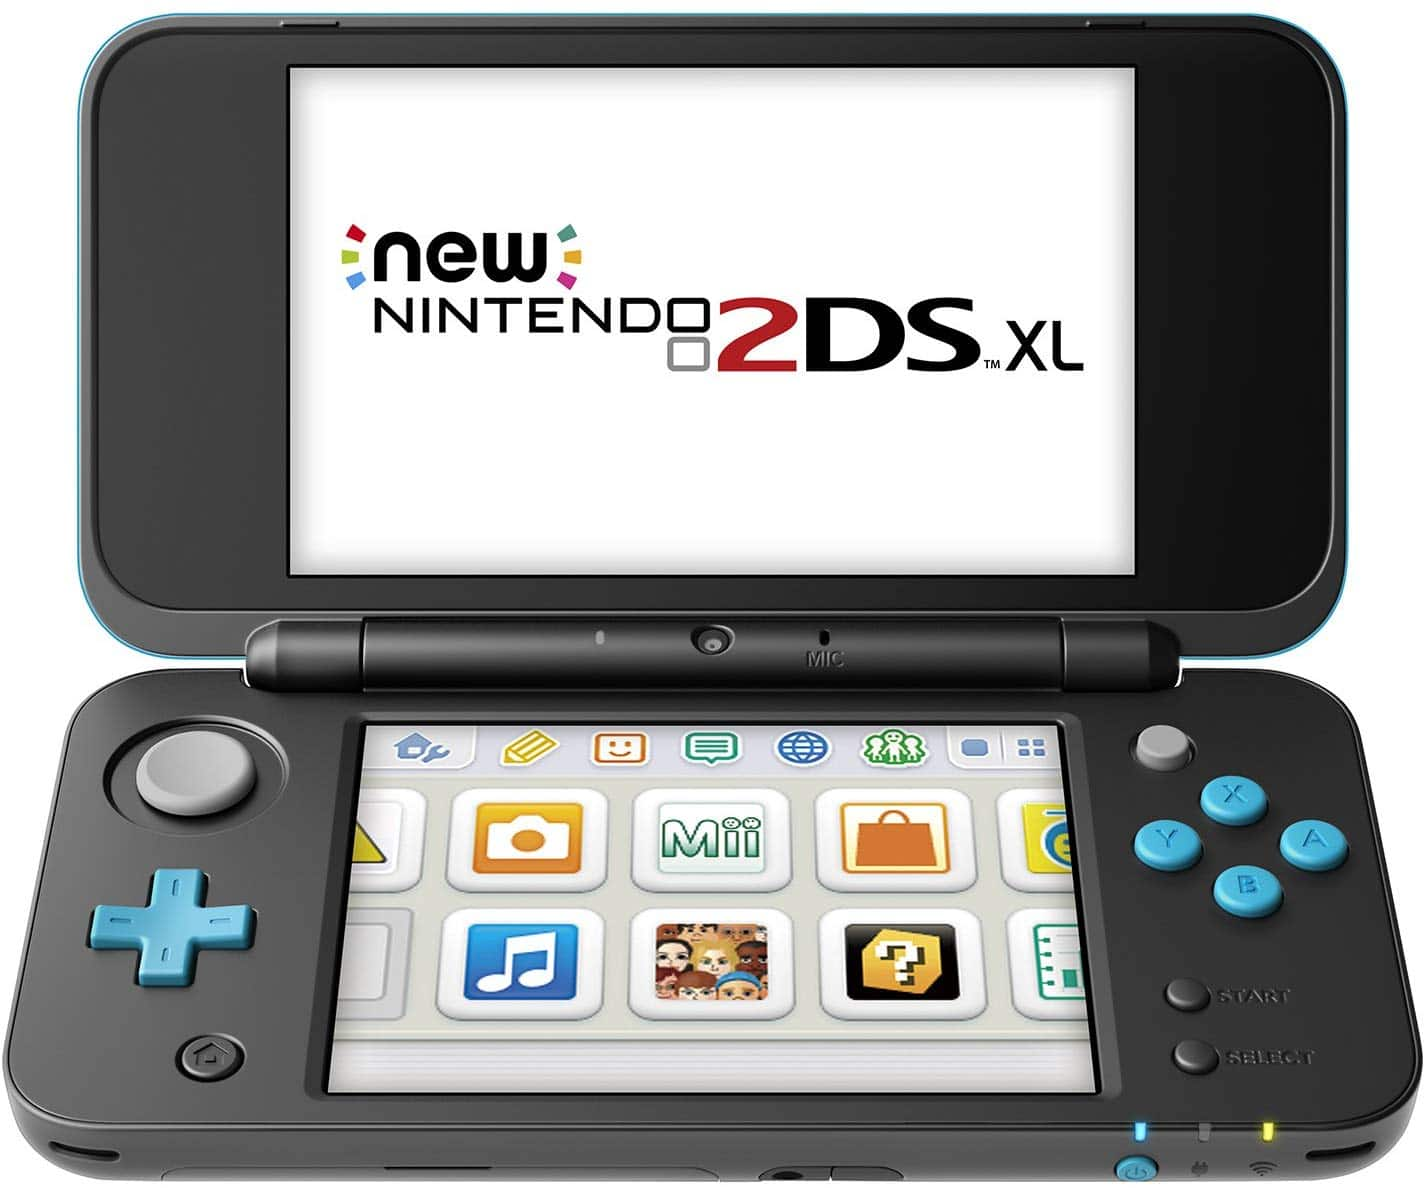 Nintendo 2DS XL - Gamestop B&M only - $129.99